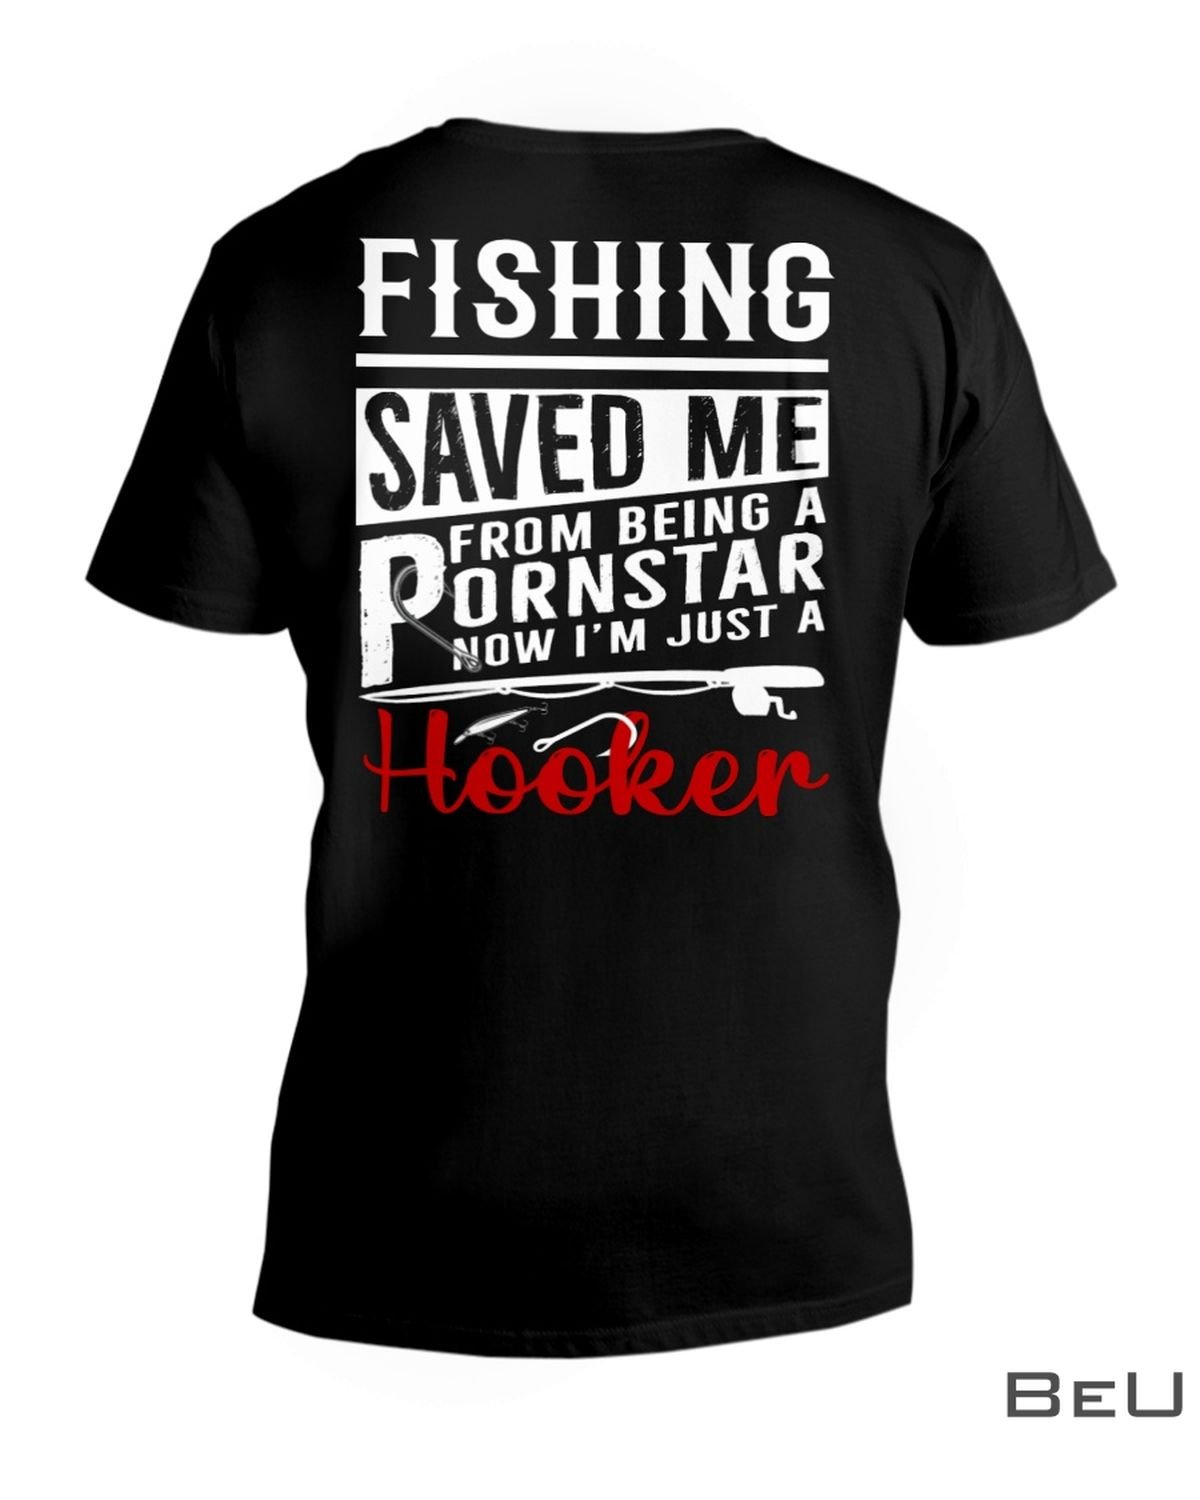 Fishing saved me from being a pornstar now I'm just a hooker shirtz